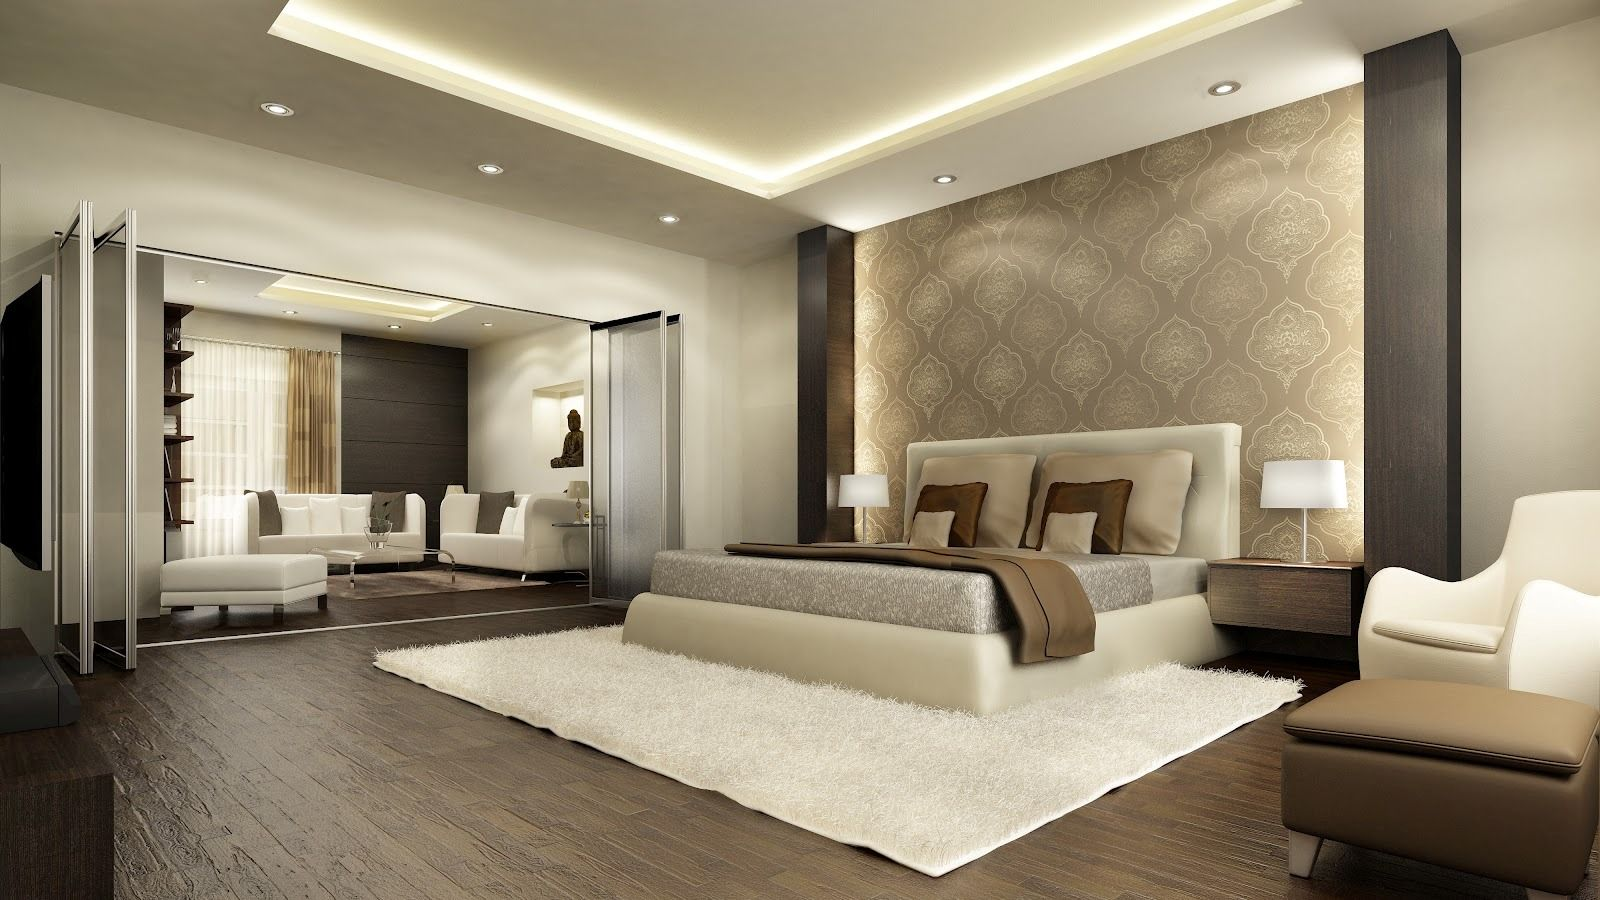 Master Bedroom Modern Design modern master bedroom design ideas with luxury lamps white bed